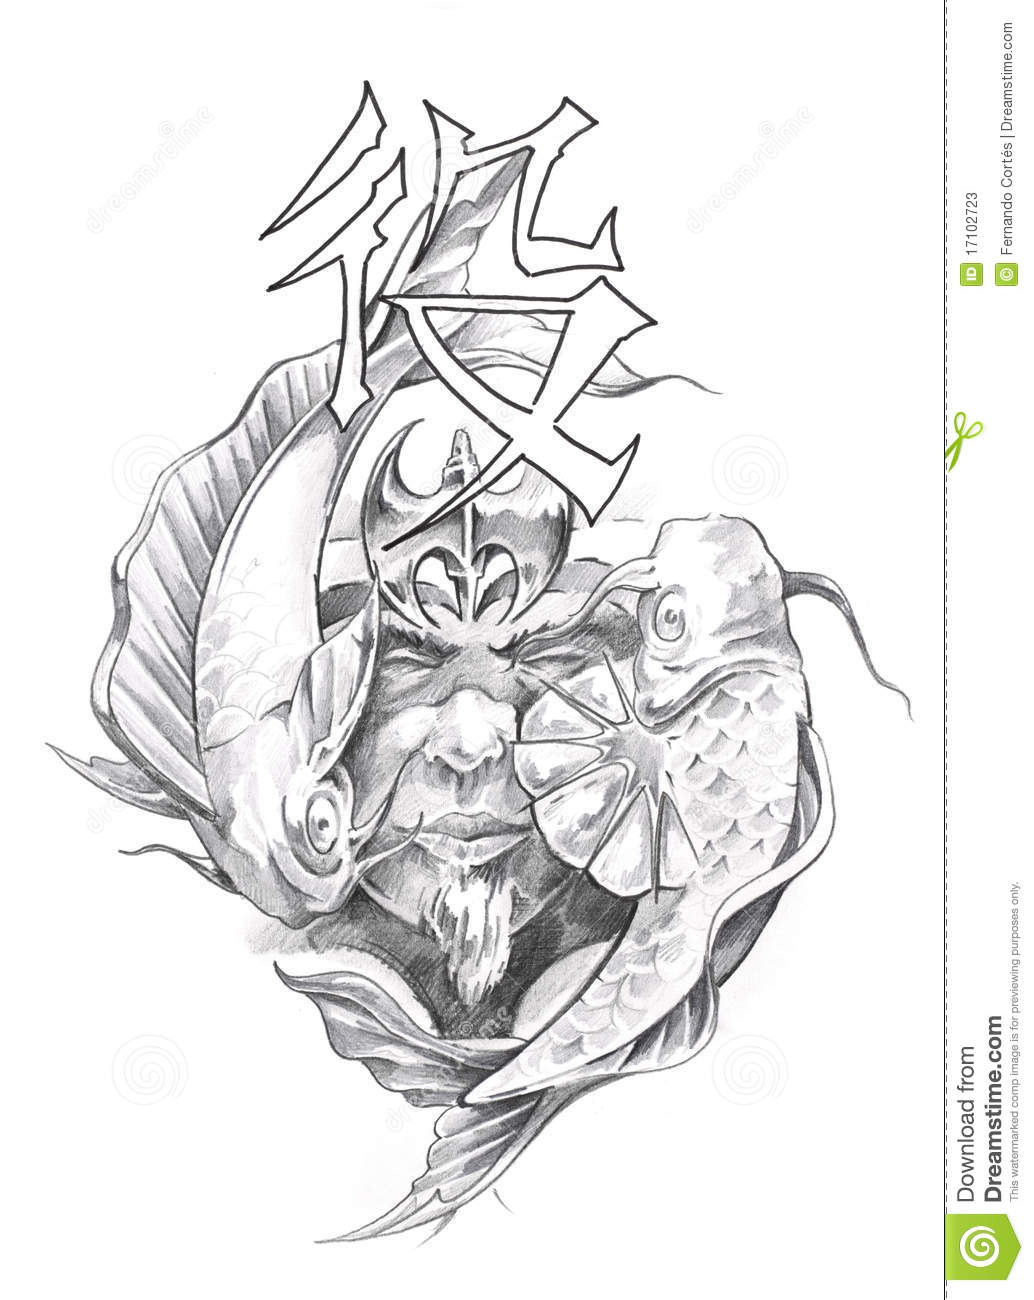 Https Www Dreamstime Com Stock Photos Tattoo Art Sketch Japanese Warrior Image17102723